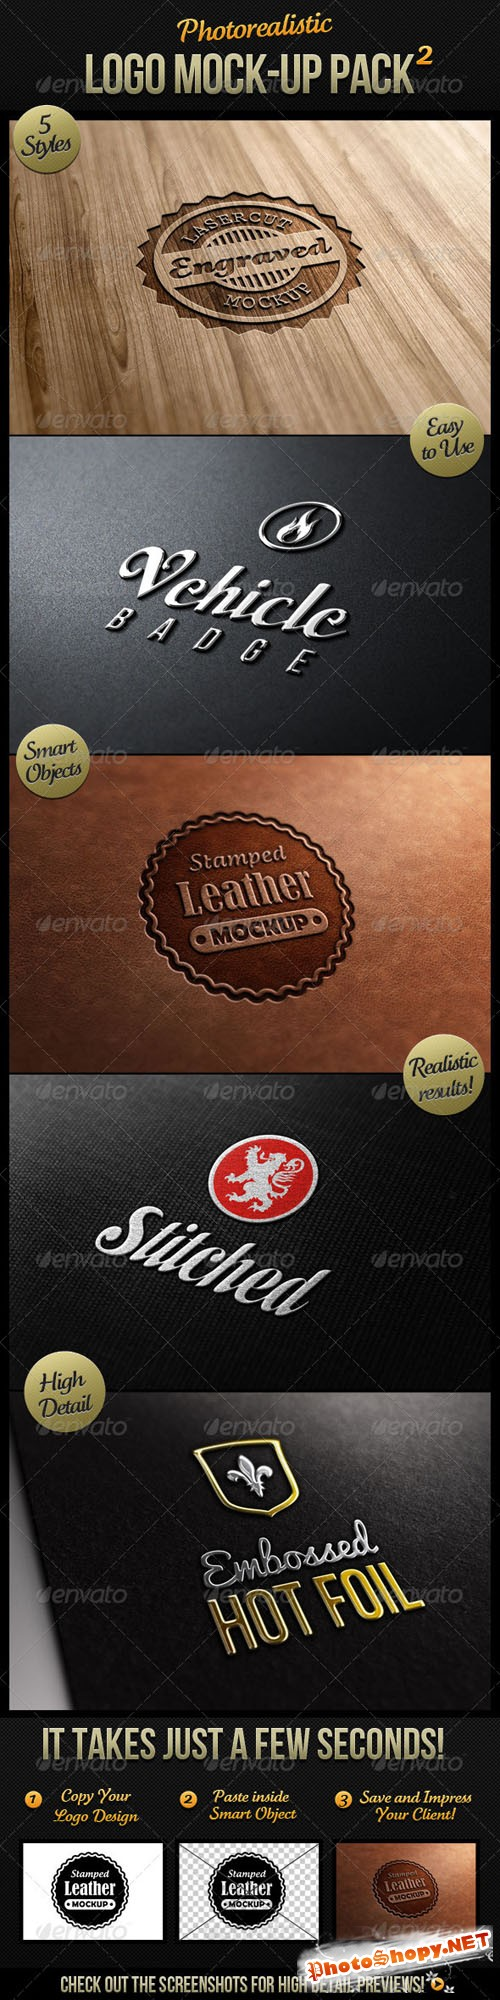 GraphicRiver - Photorealistic Logo Mock-Up Pack 2 - 1984512